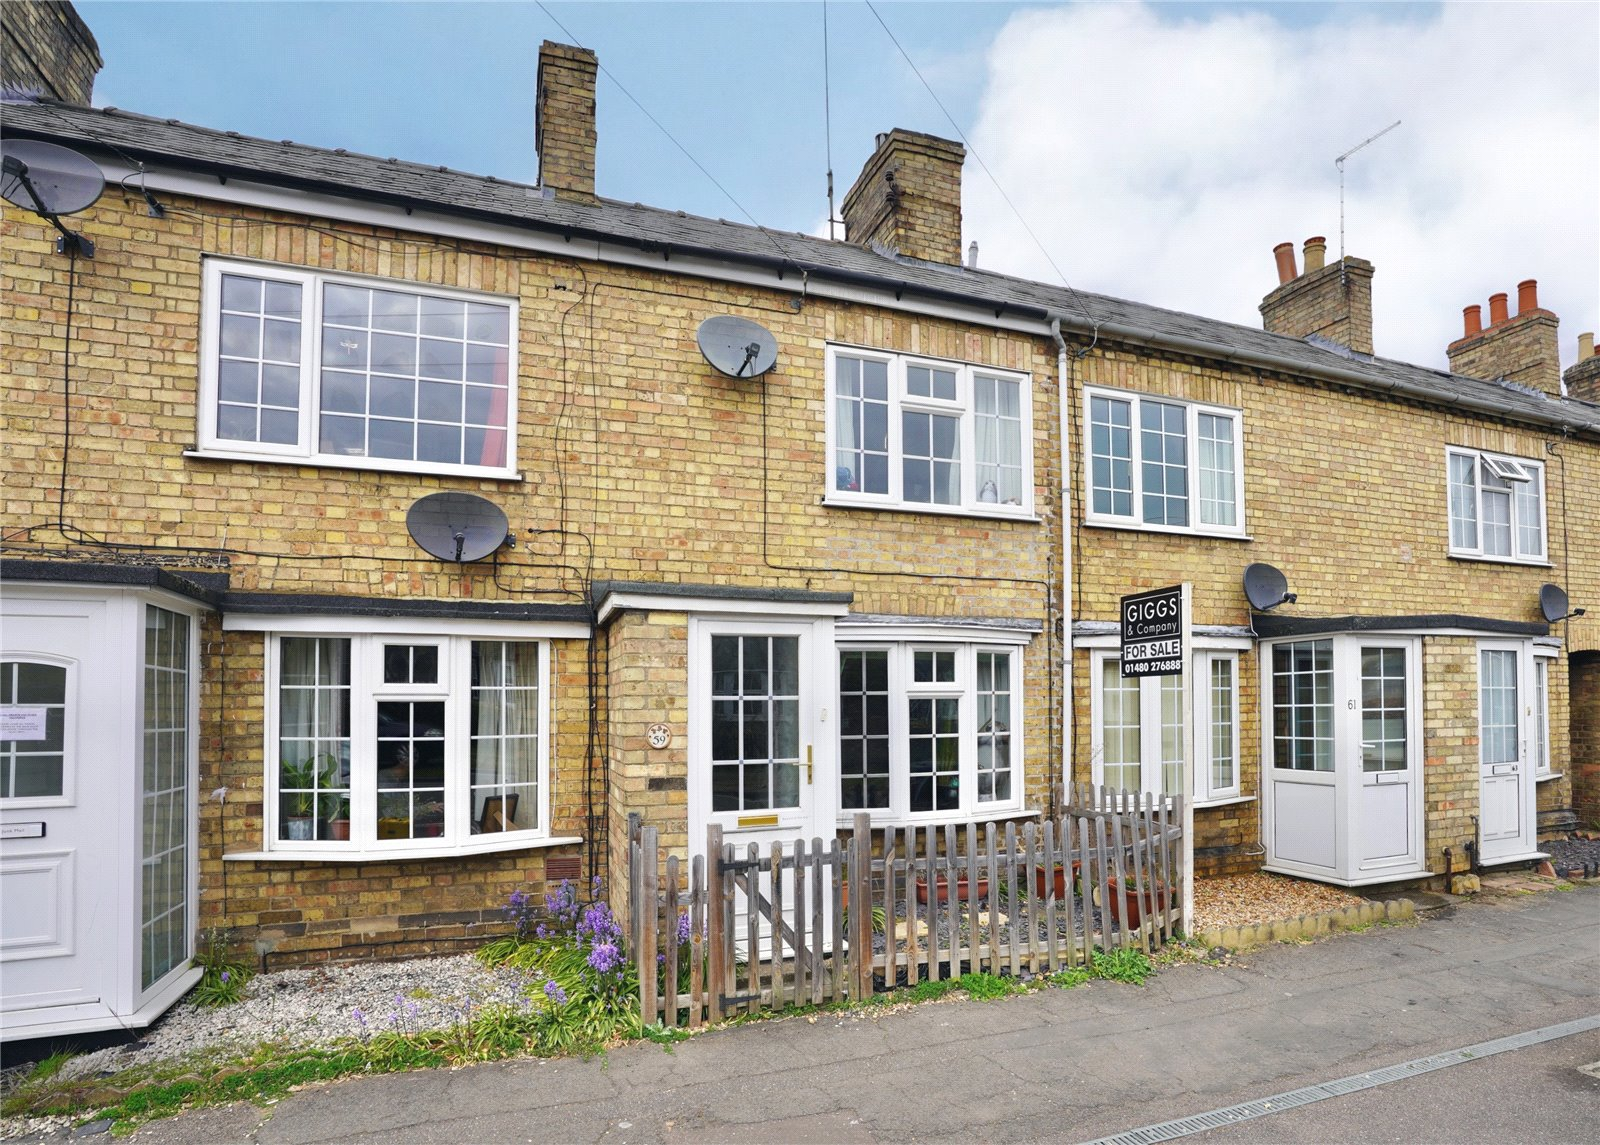 2 bed house for sale in Eaton Ford, PE19 7BA, PE19